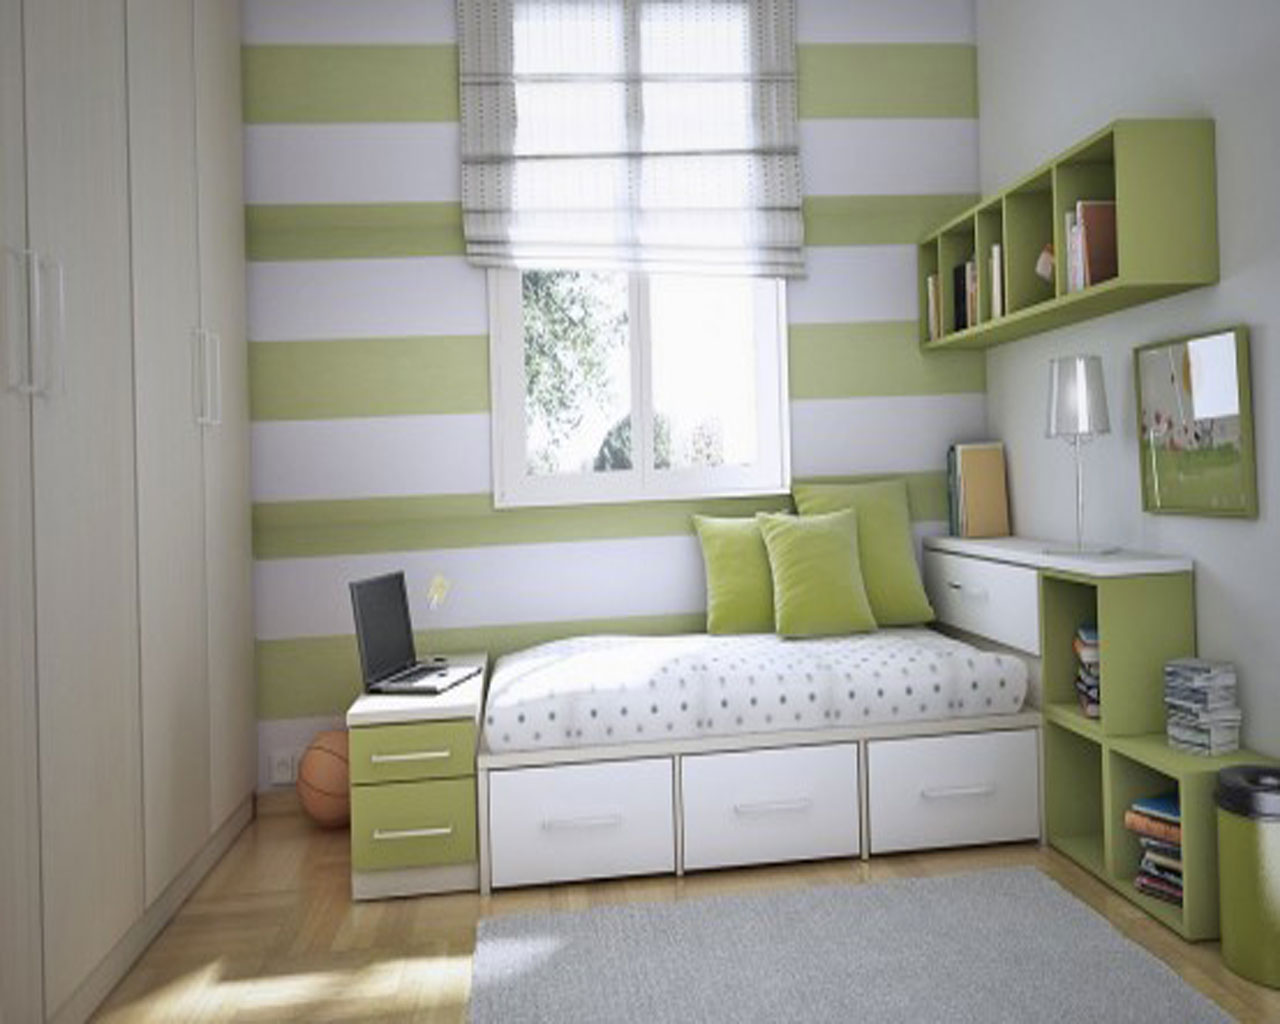 Best kids room design ideas times news uk - Room decoration ideas for teenagers ...